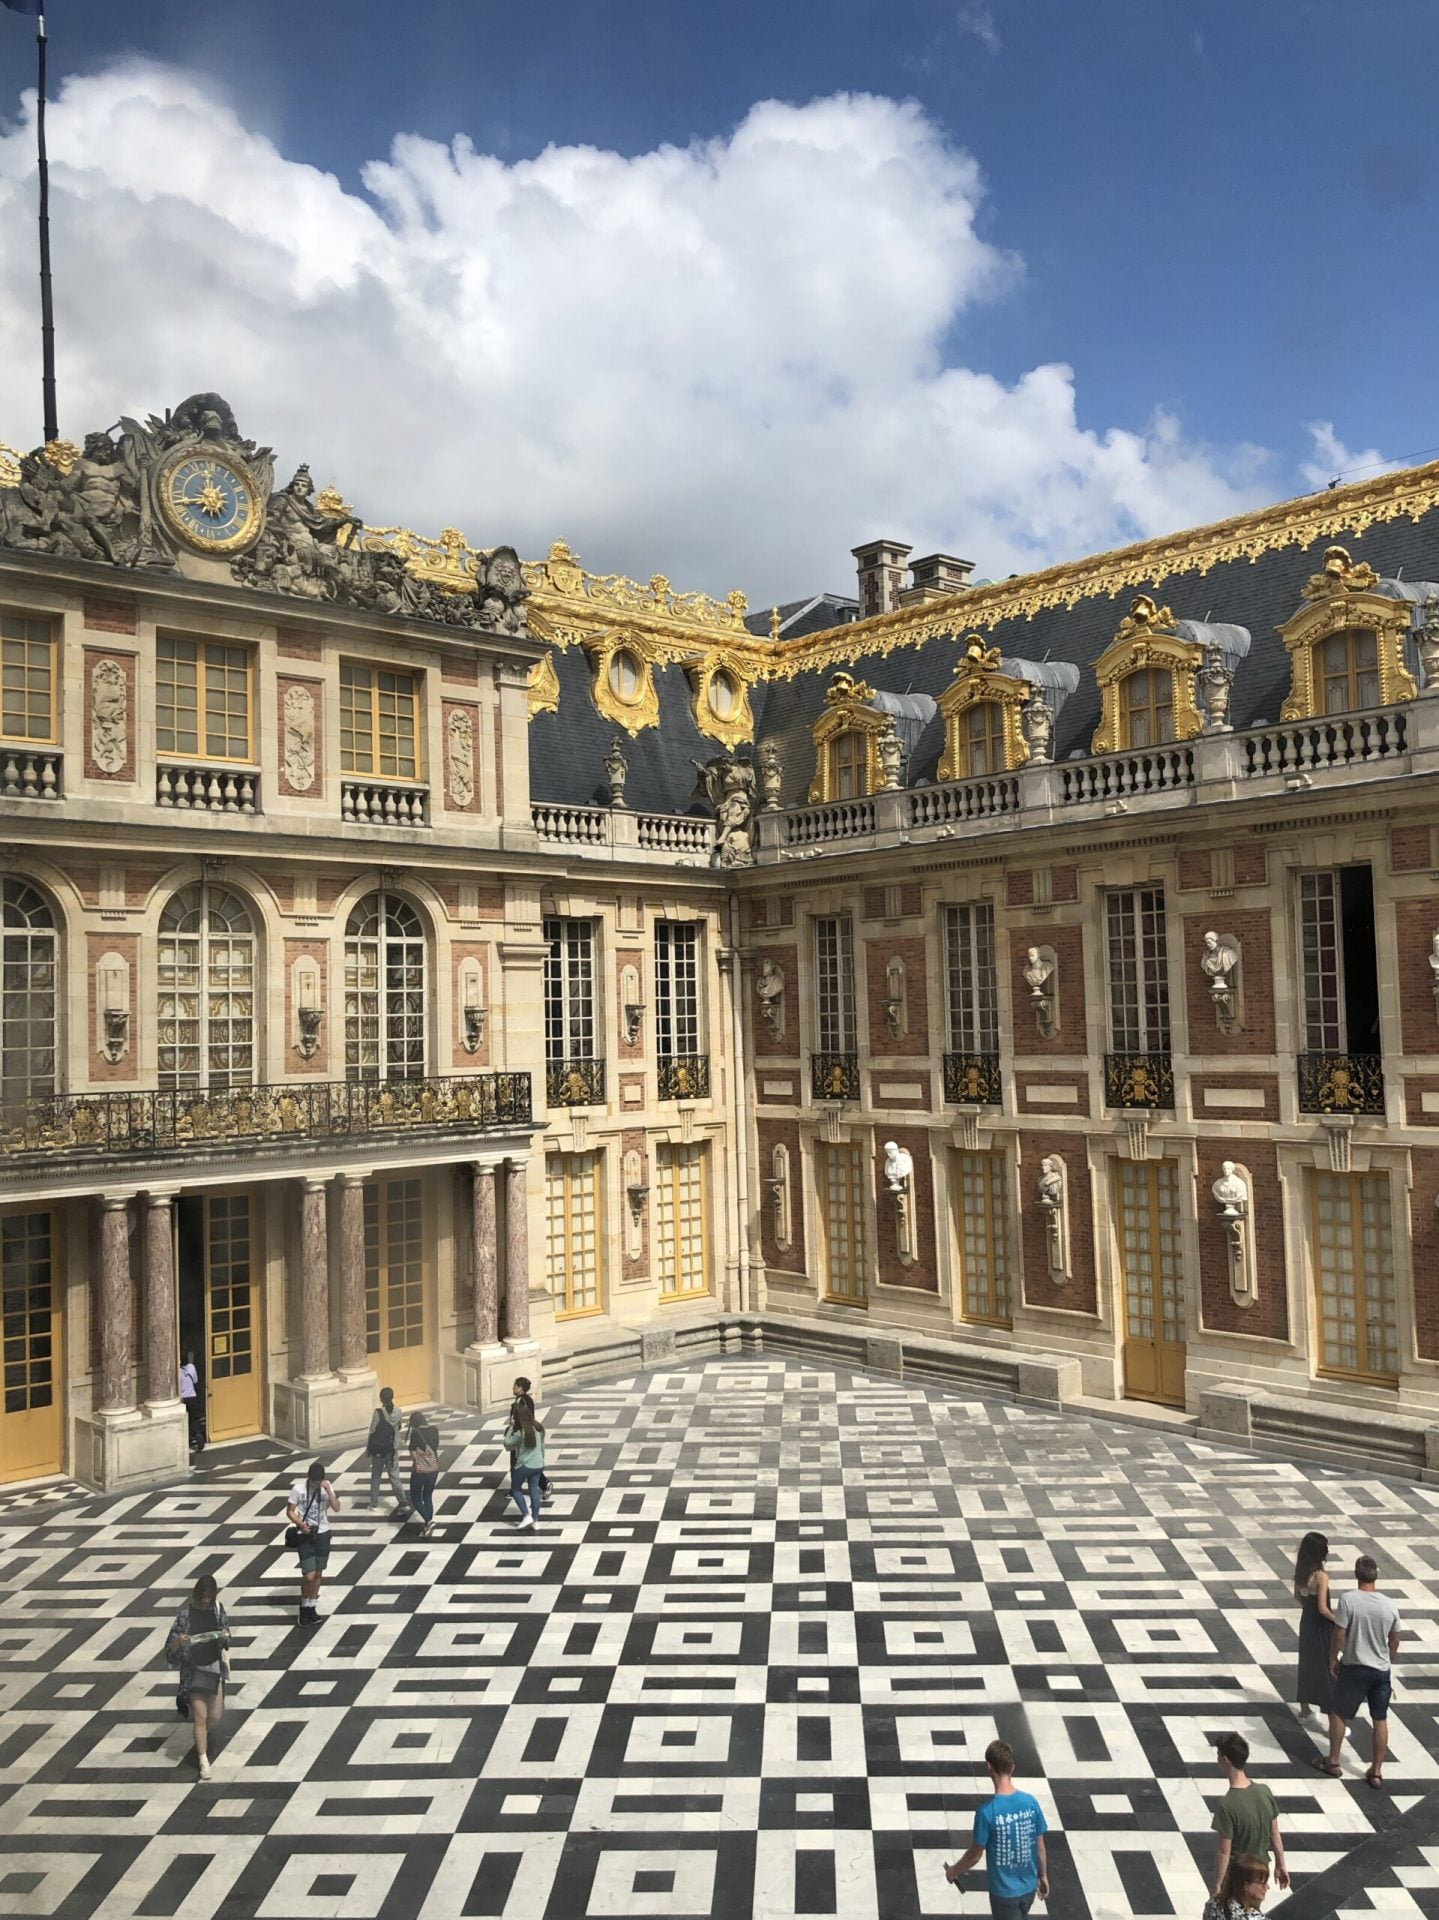 Courtyard of the Palace of Versailles